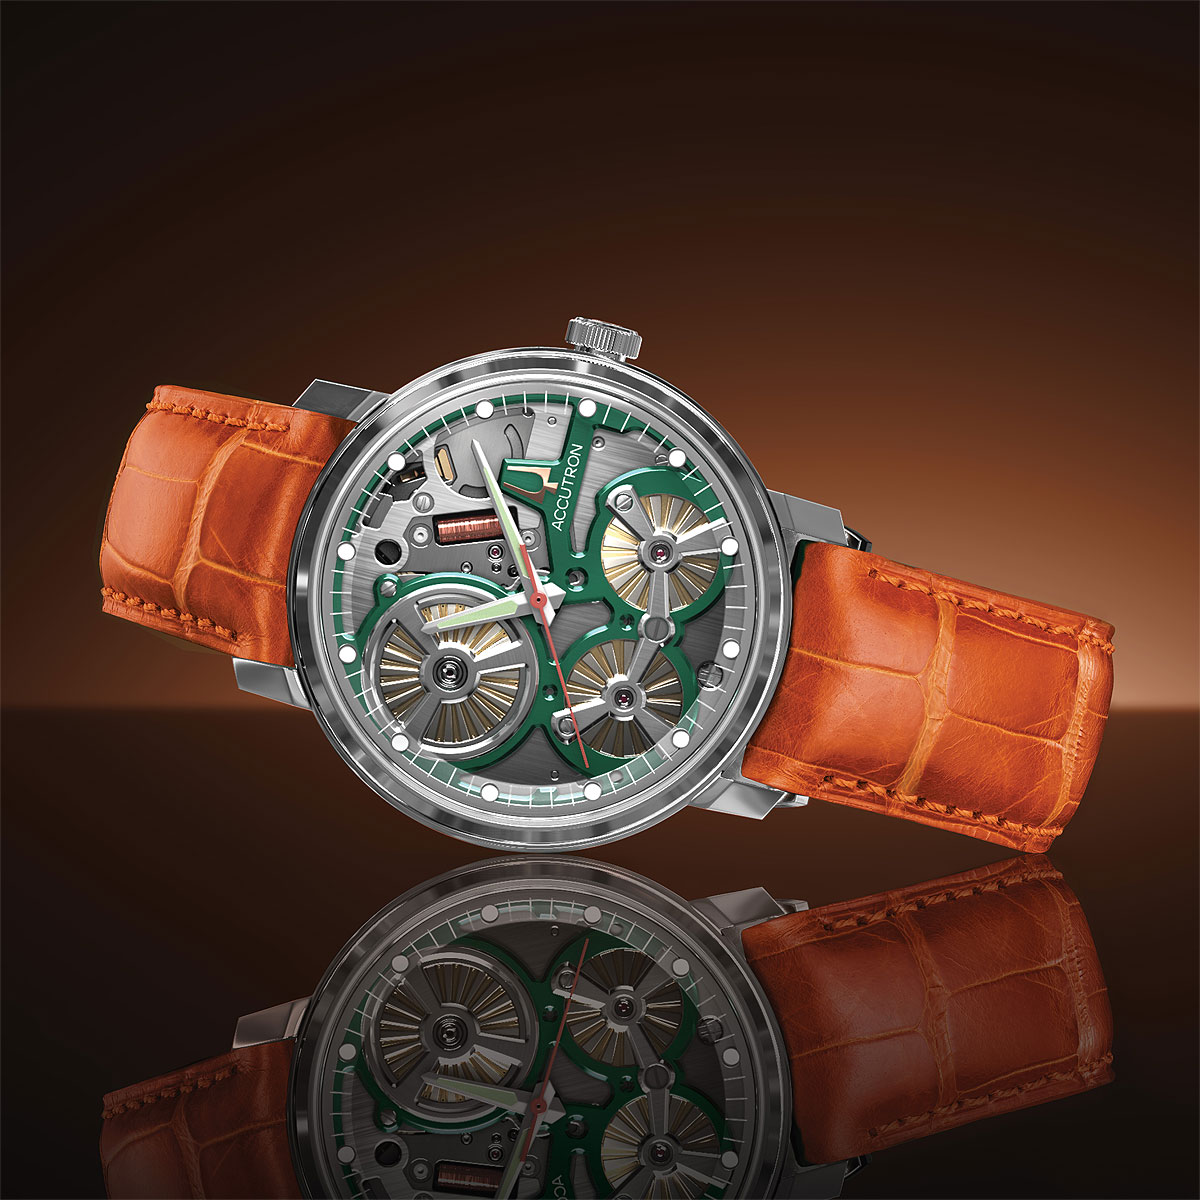 Accutron Adds Color in Expansion of its Spaceview 2020 Collection